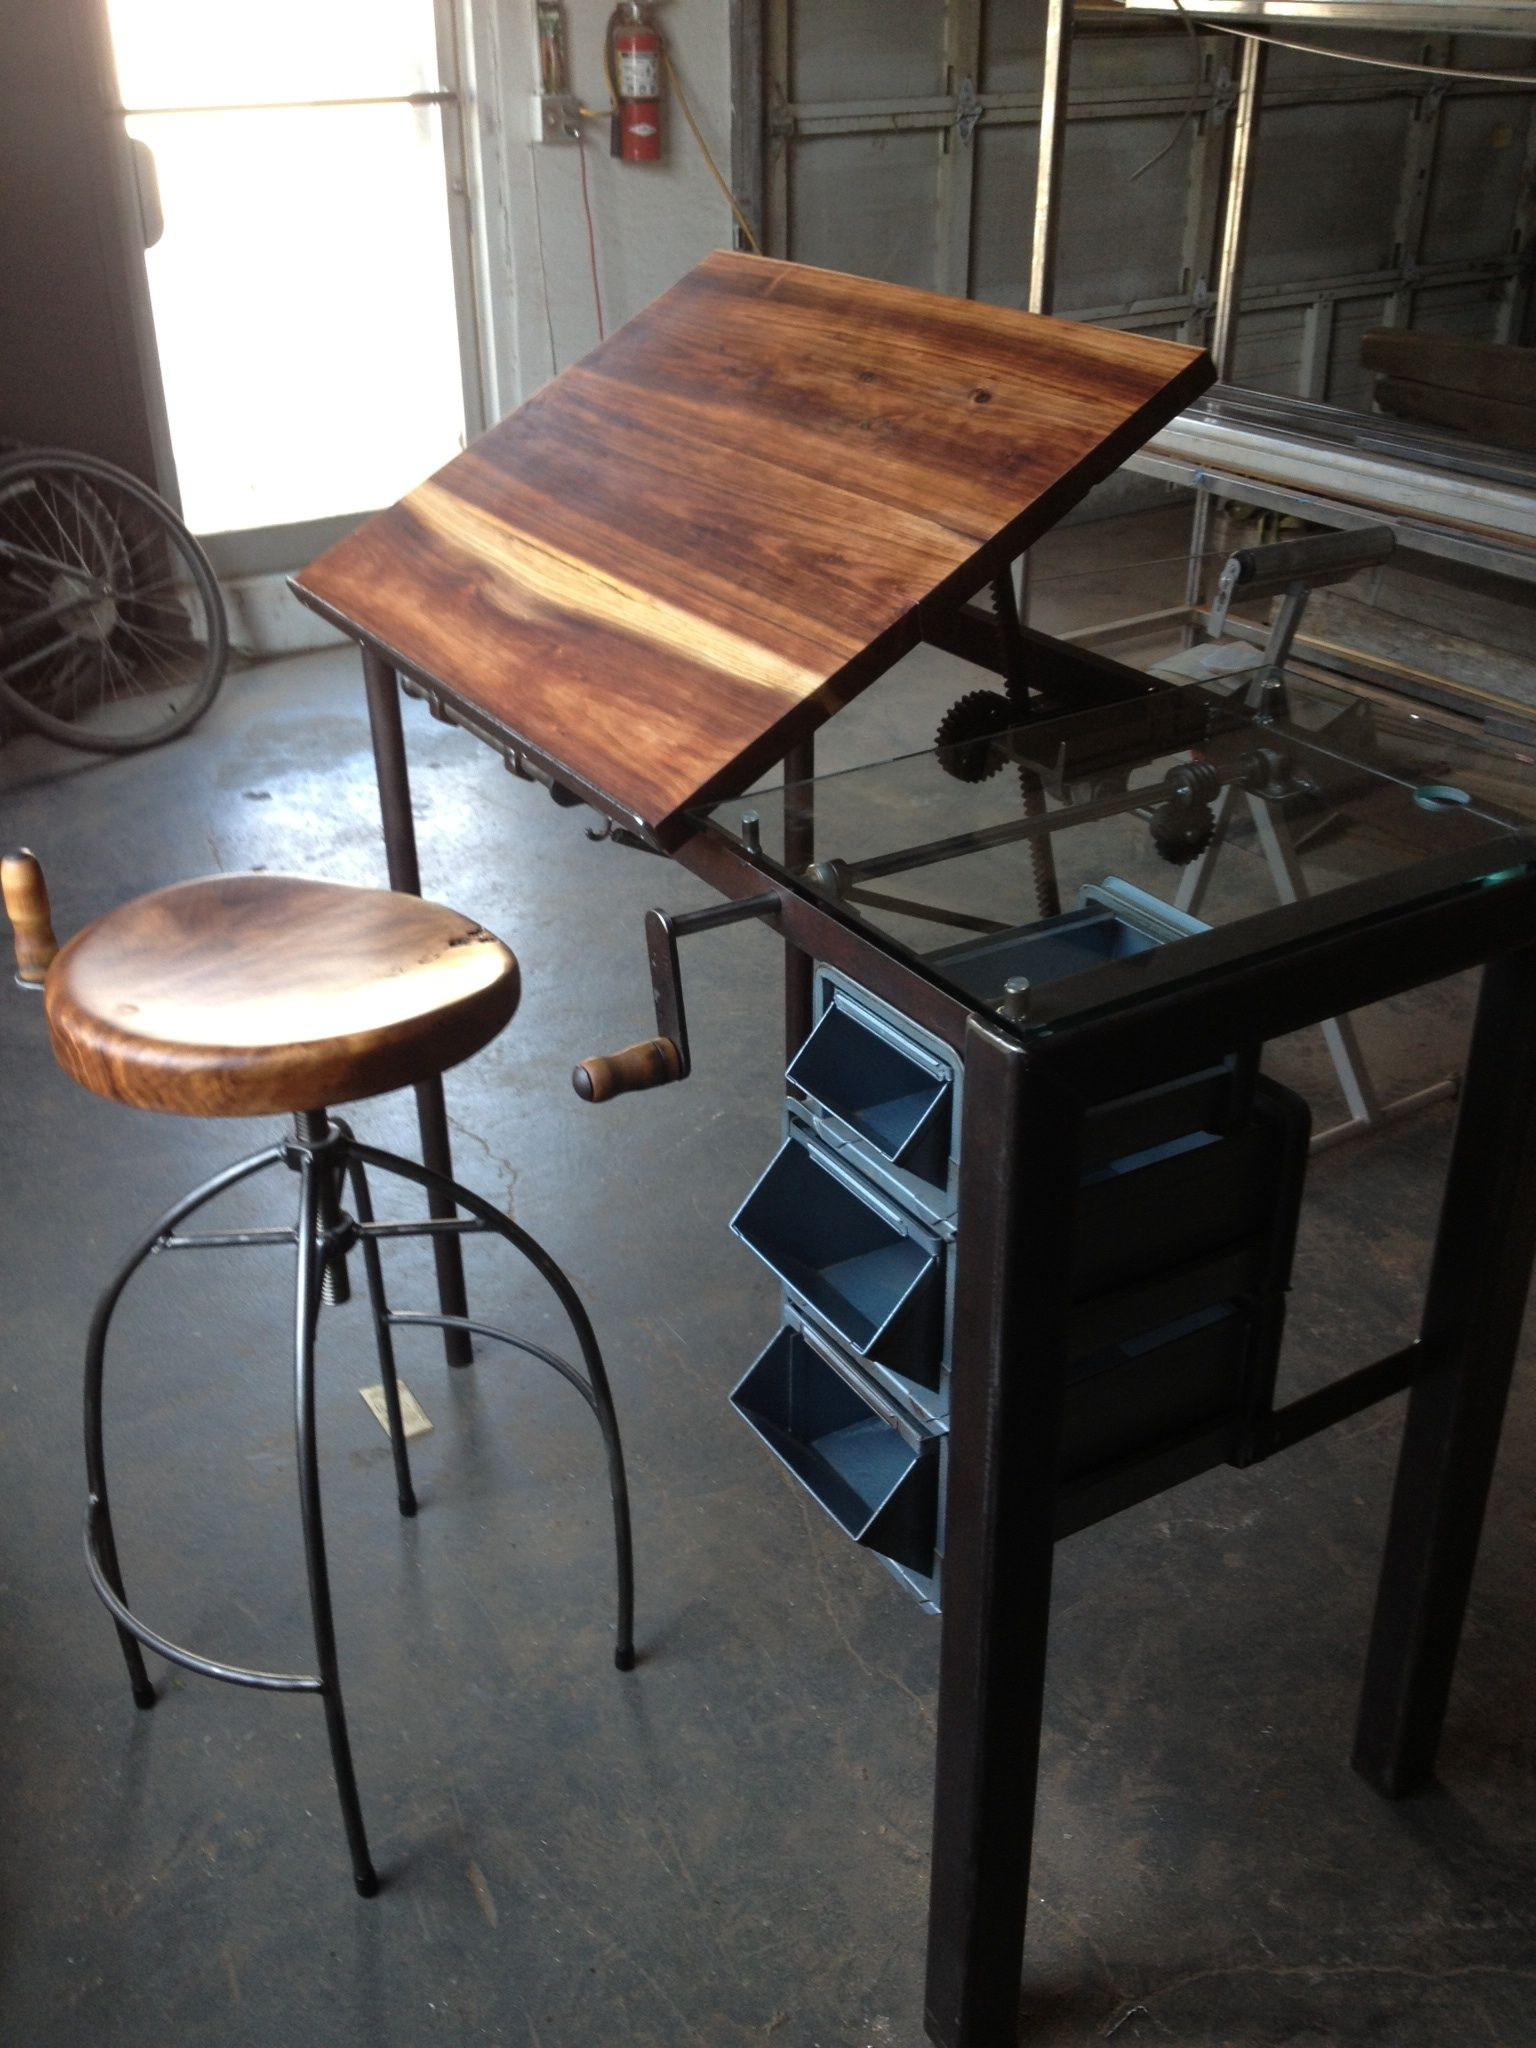 Crank drafting table. & Crank drafting table. | interiorismo arquitectonico | Pinterest ...